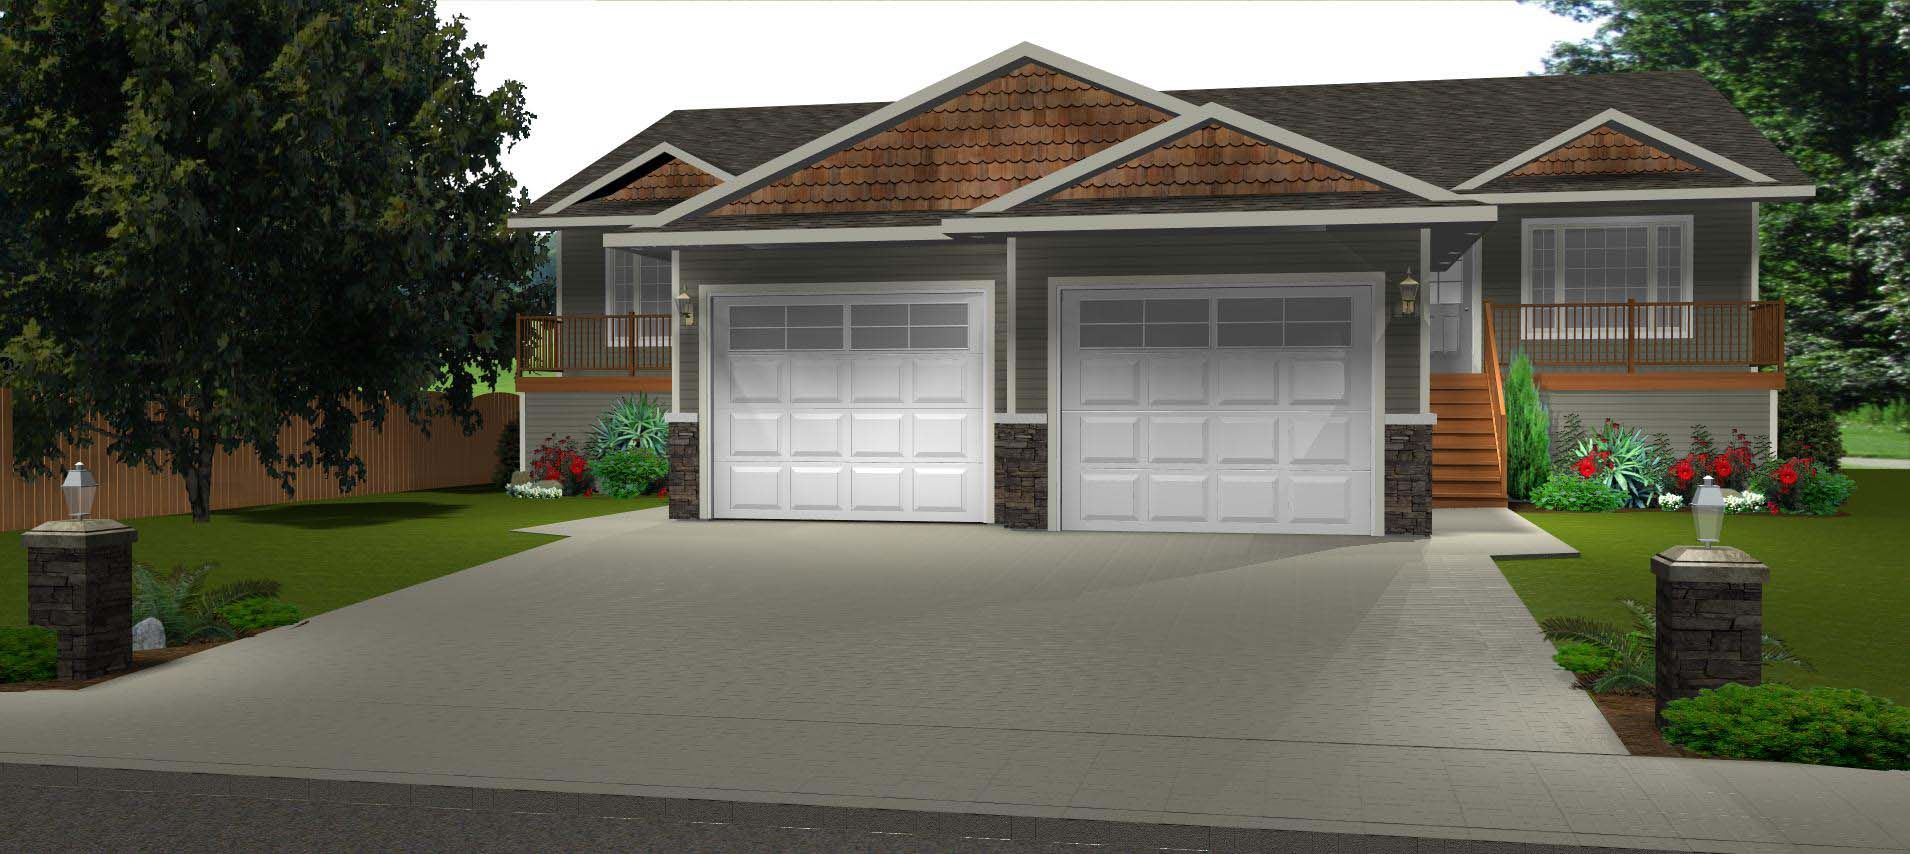 Perfect side by side duplex for a wider side bi level for Side by side duplex plans